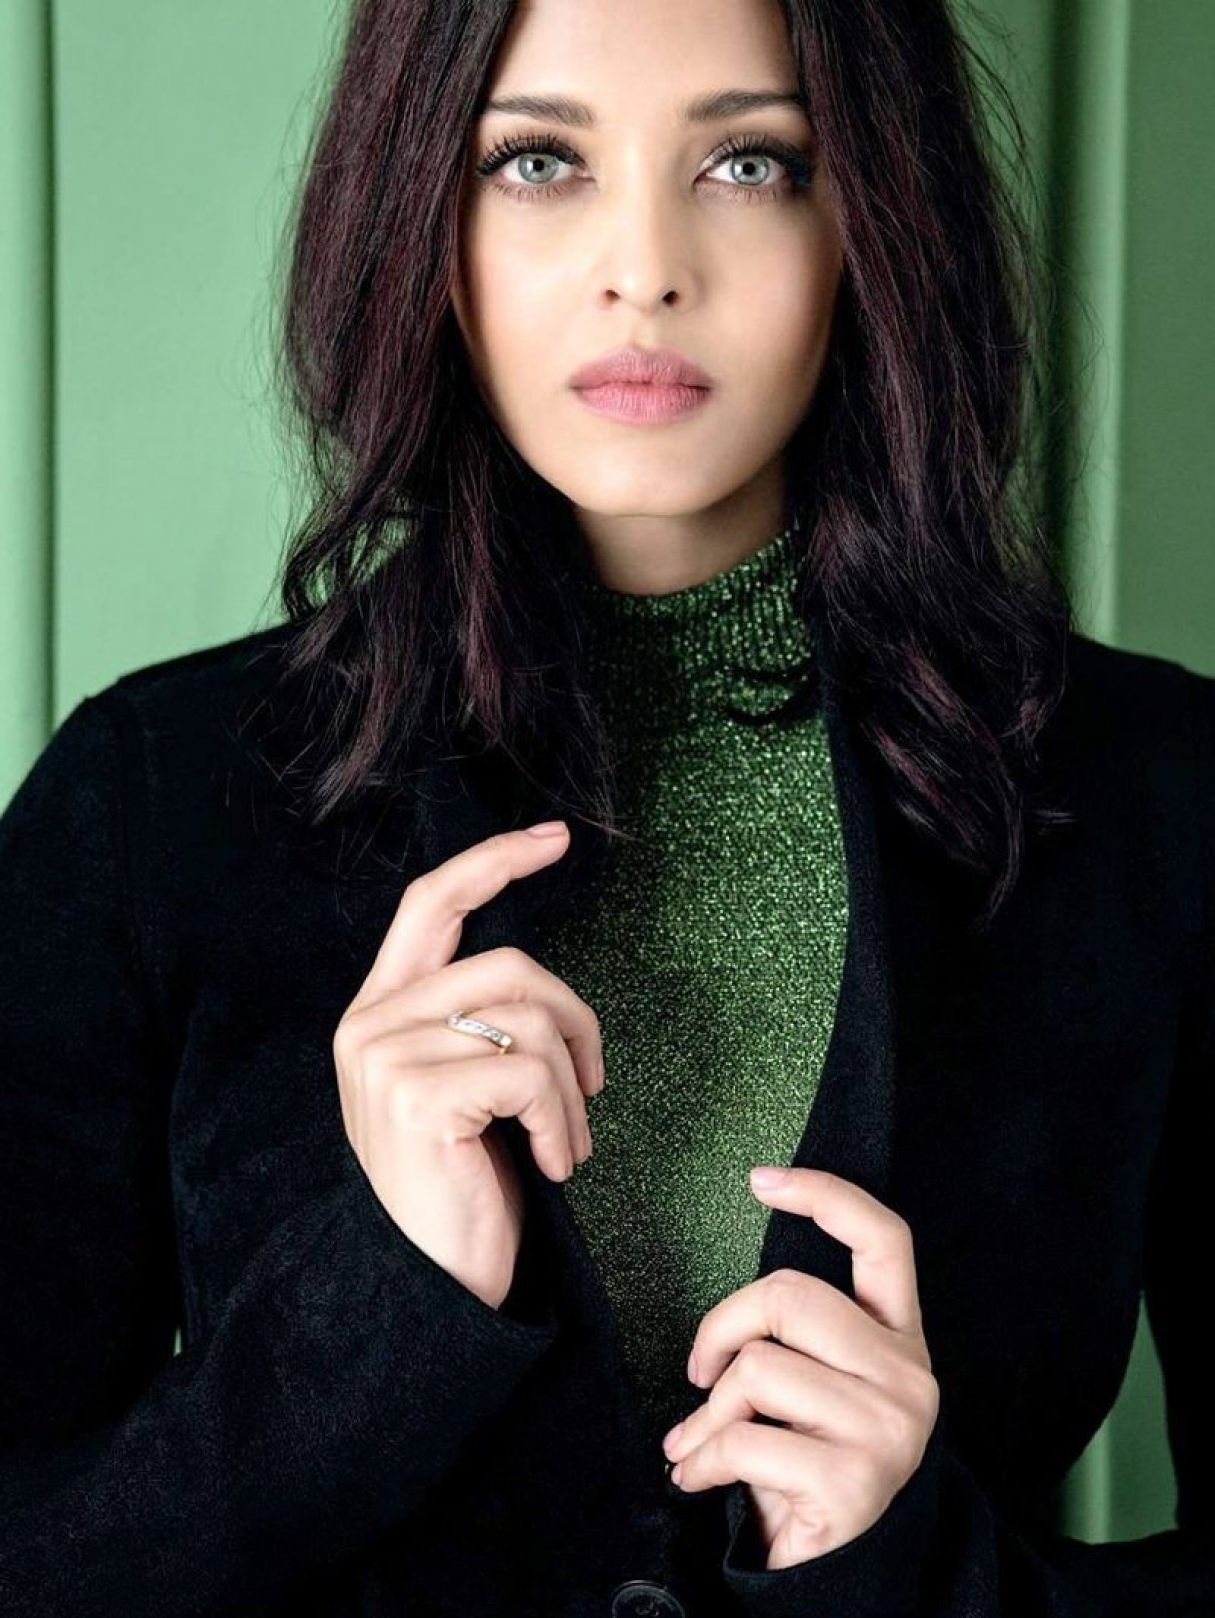 Aishwarya Rai Bachchan Looking Gorgeous On The Cover Of Grazia India S Latest Photoshoot Aishwarya Rai Makeup Aishwarya Rai Bachchan Beautiful Indian Actress